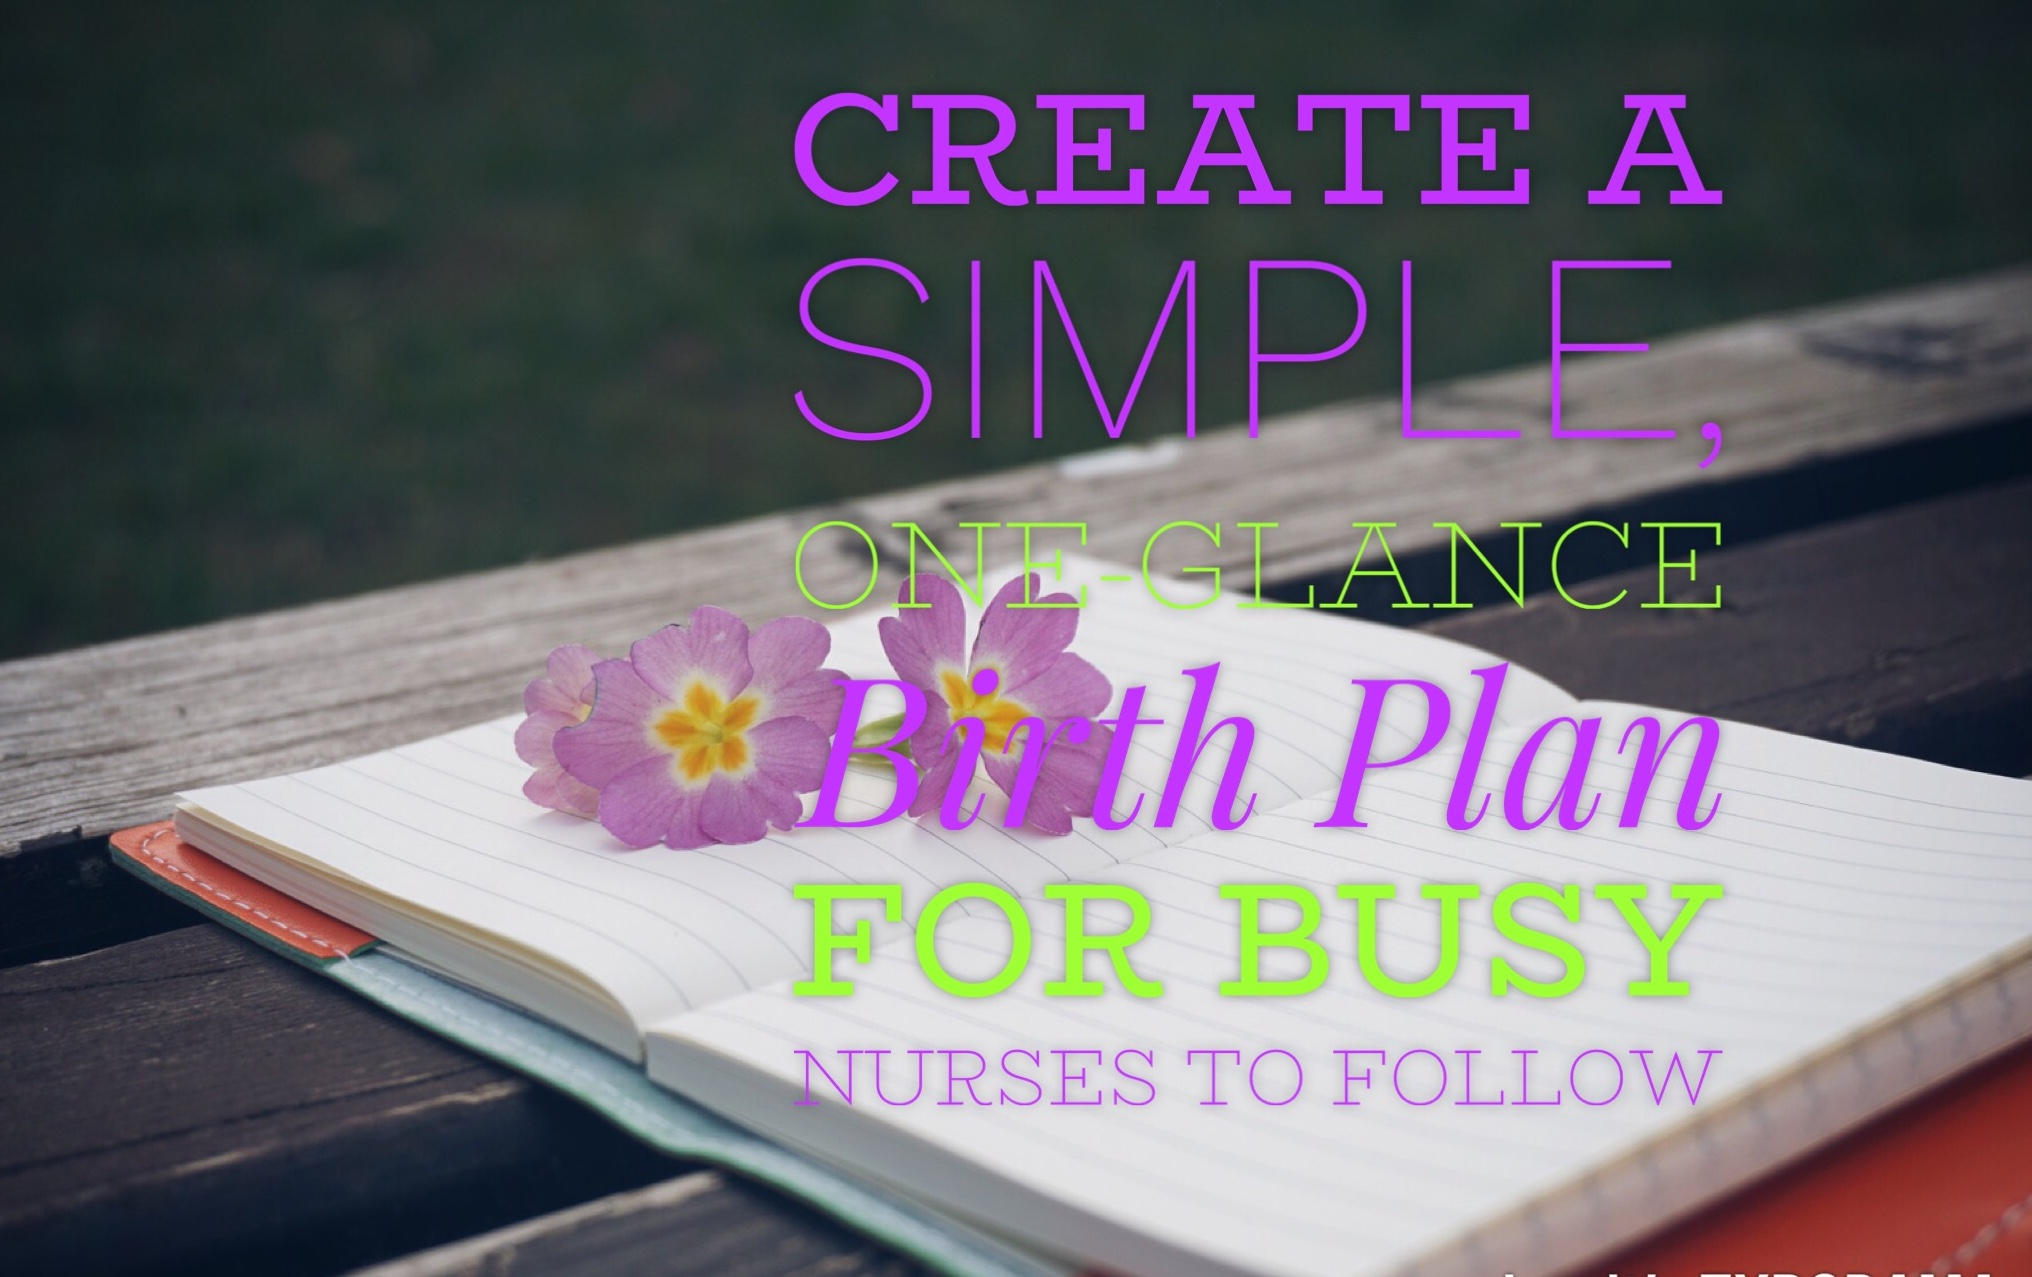 HOW TO CREATE A SIMPLE, ONE-GLANCE  BIRTH PLAN  FOR BUSY NURSES TO FOLLOW